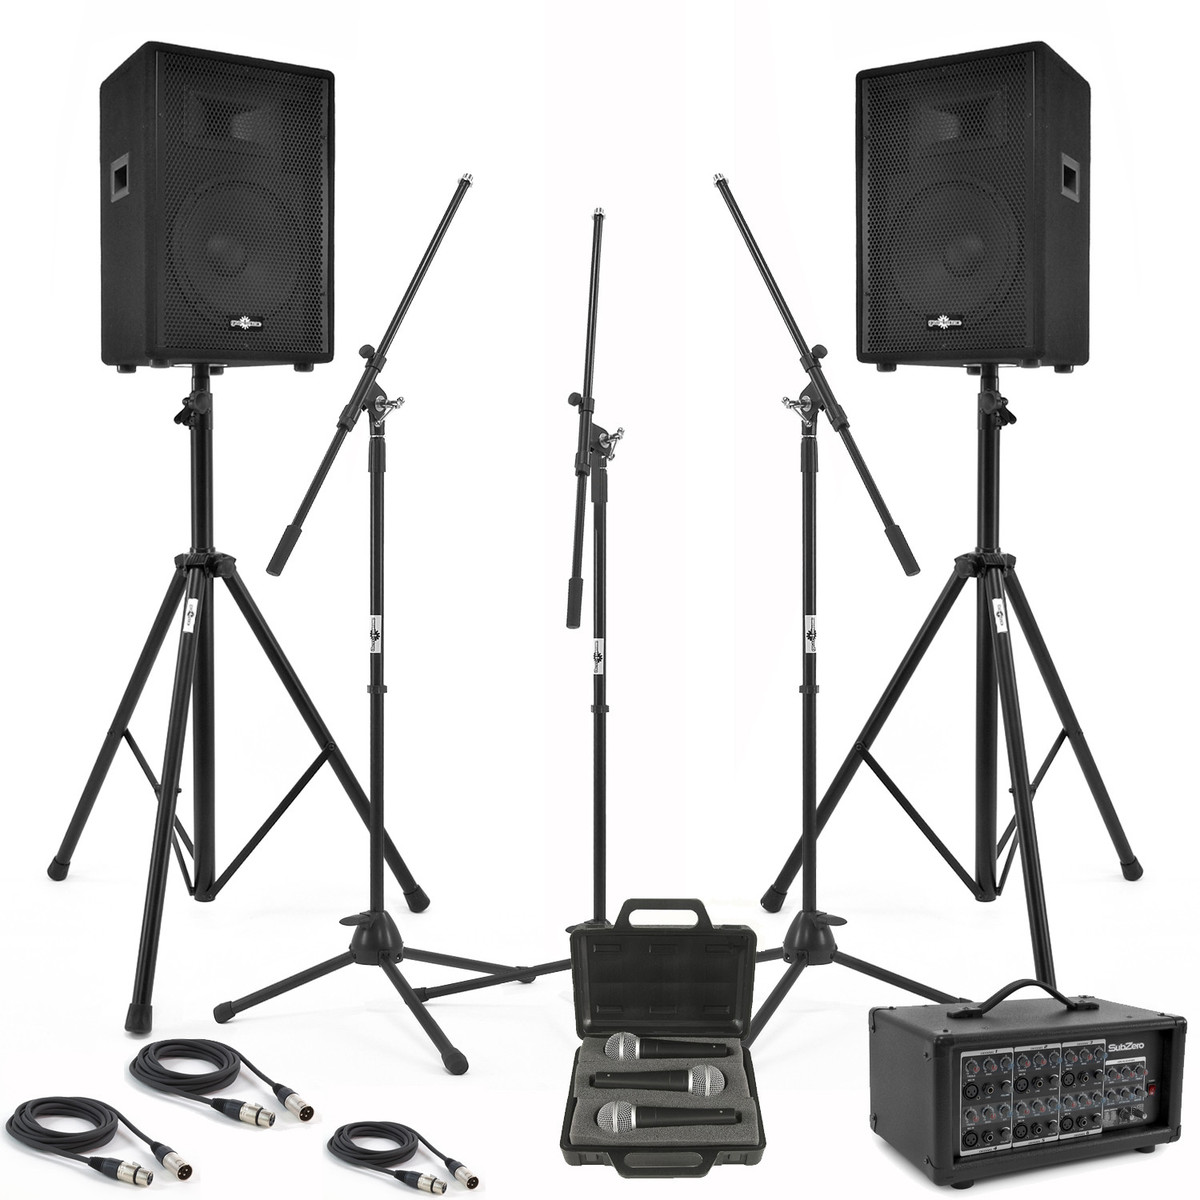 400W PA System Bundle with Powered DSP Mixer, Stands + Mics